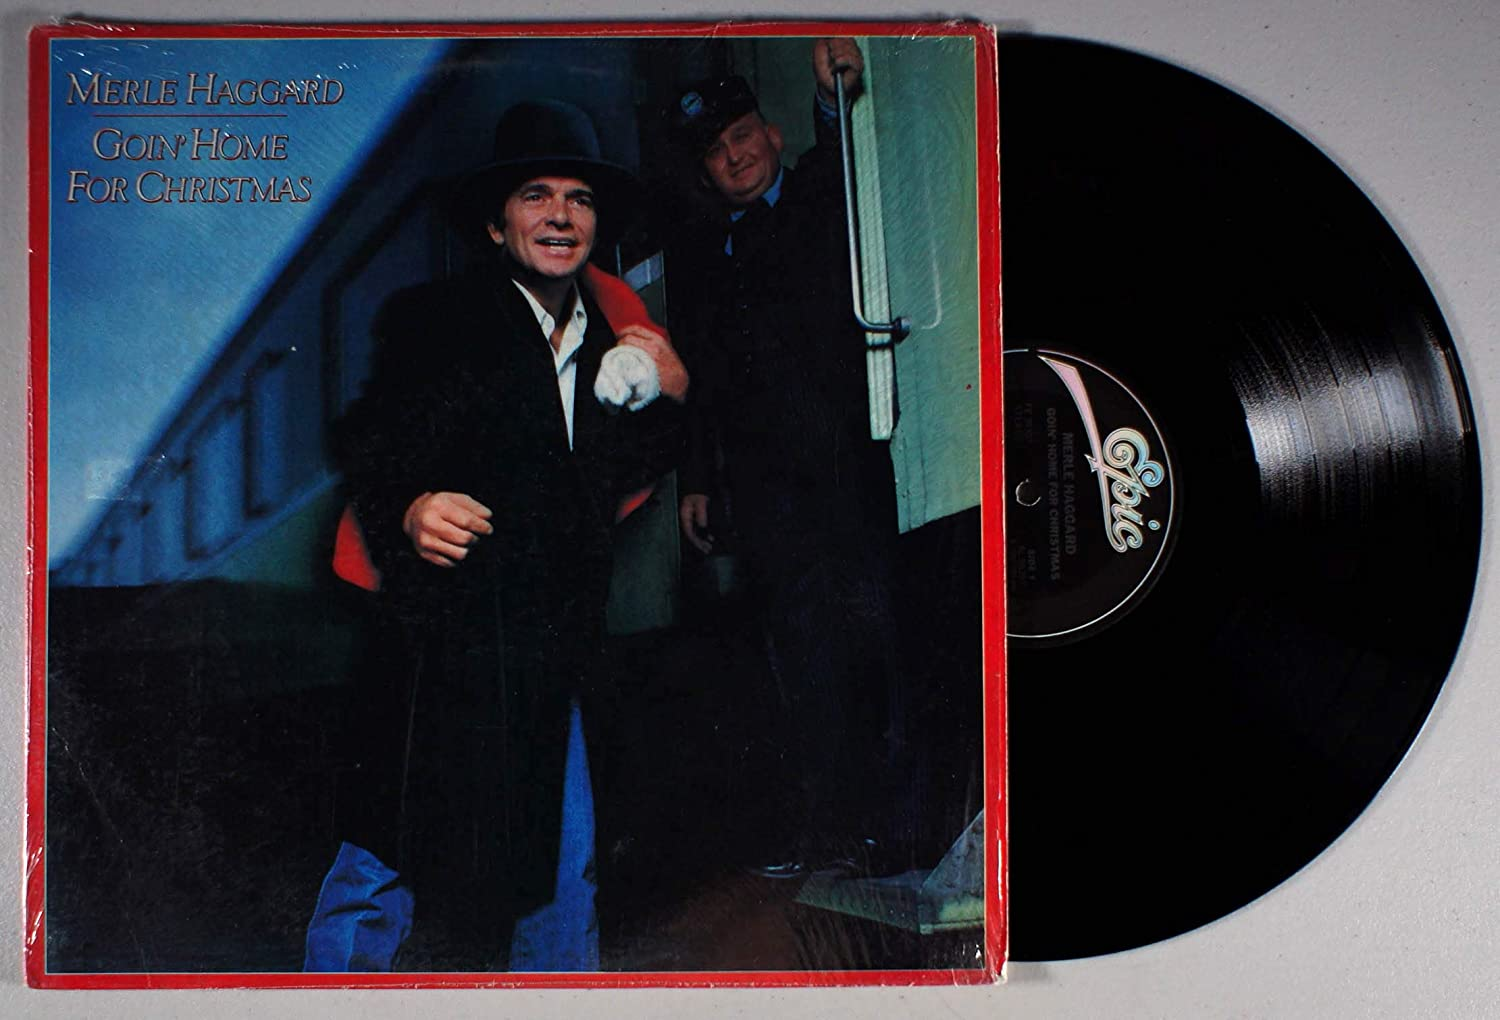 MERLE HAGGARD - goin' home for christmas' EPIC 38307 (LP vinyl record)